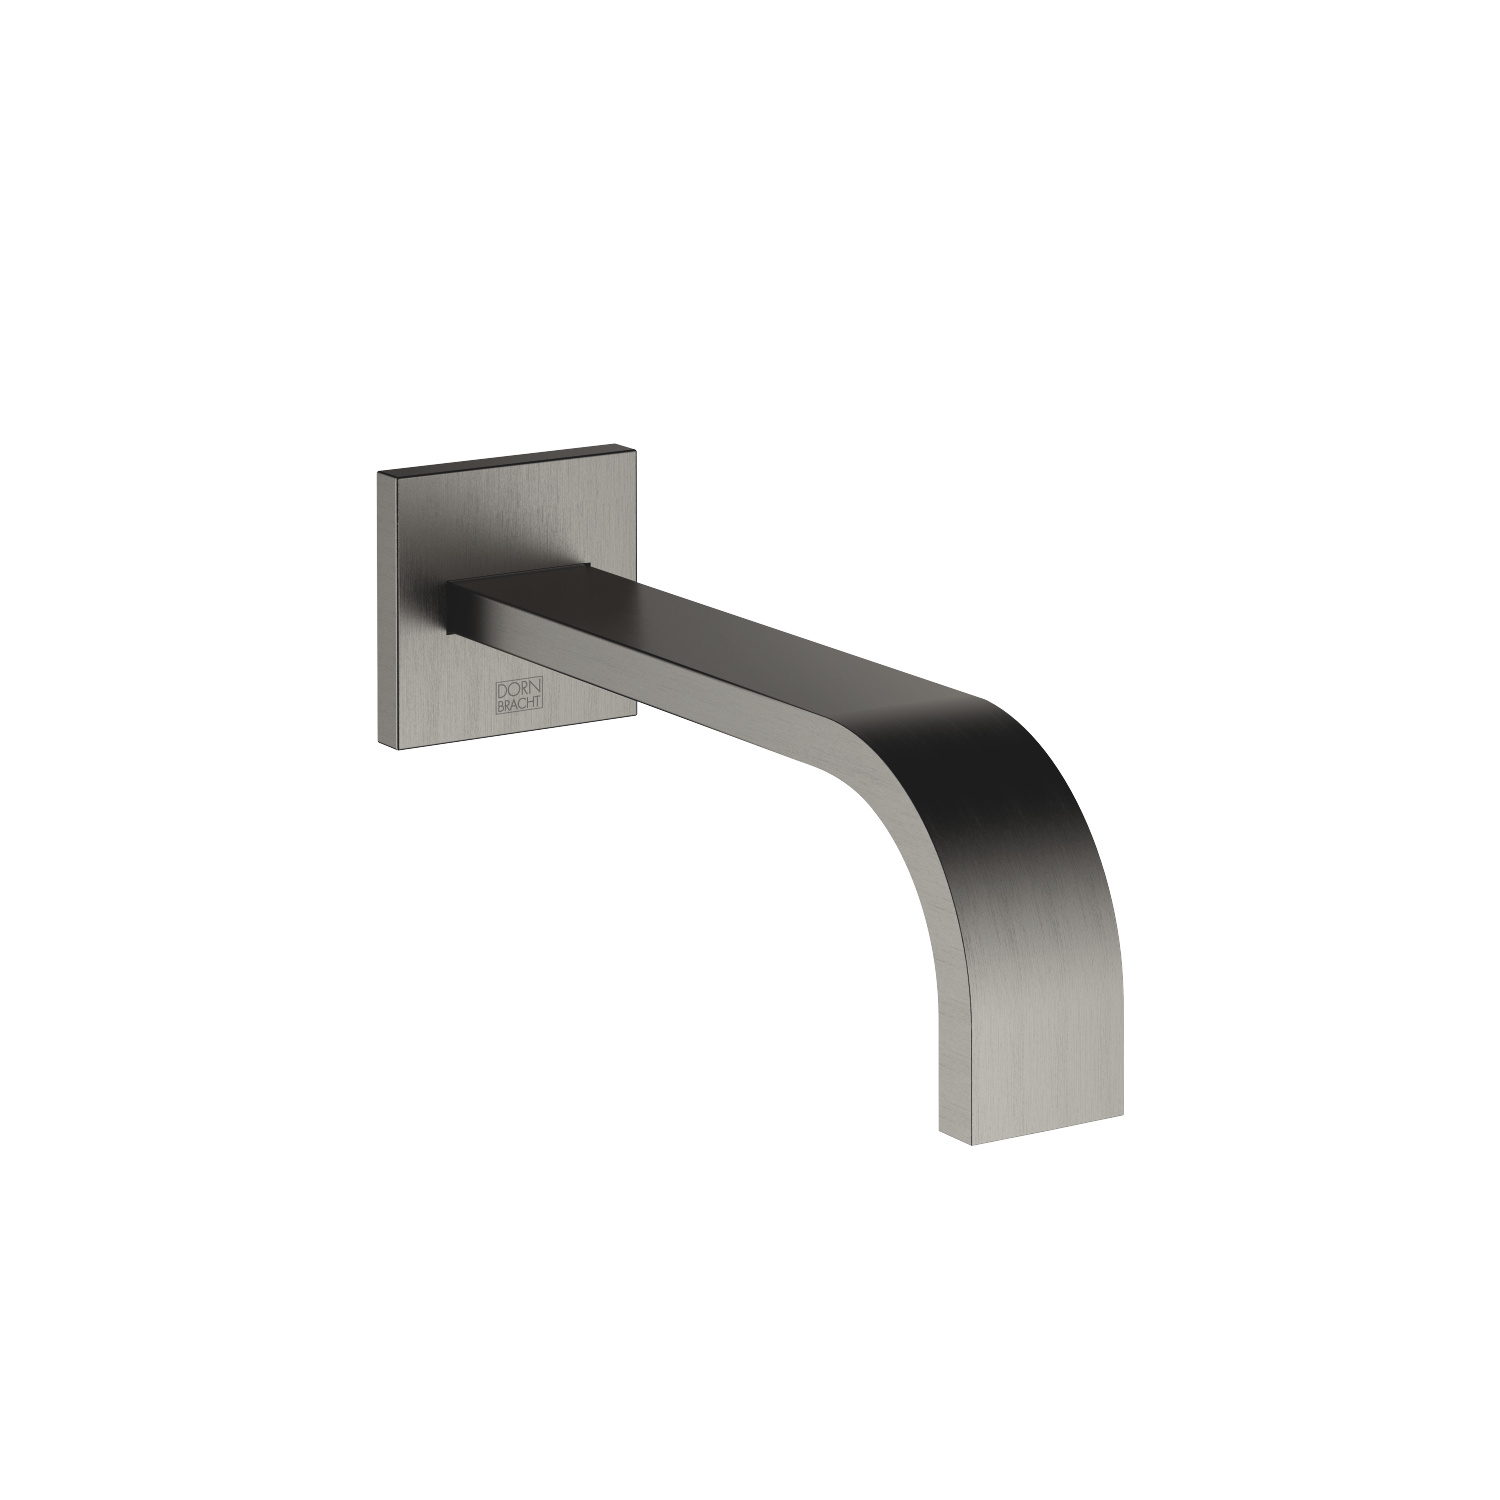 Lavatory spout, wall-mounted without drain - Dark Platinum matte